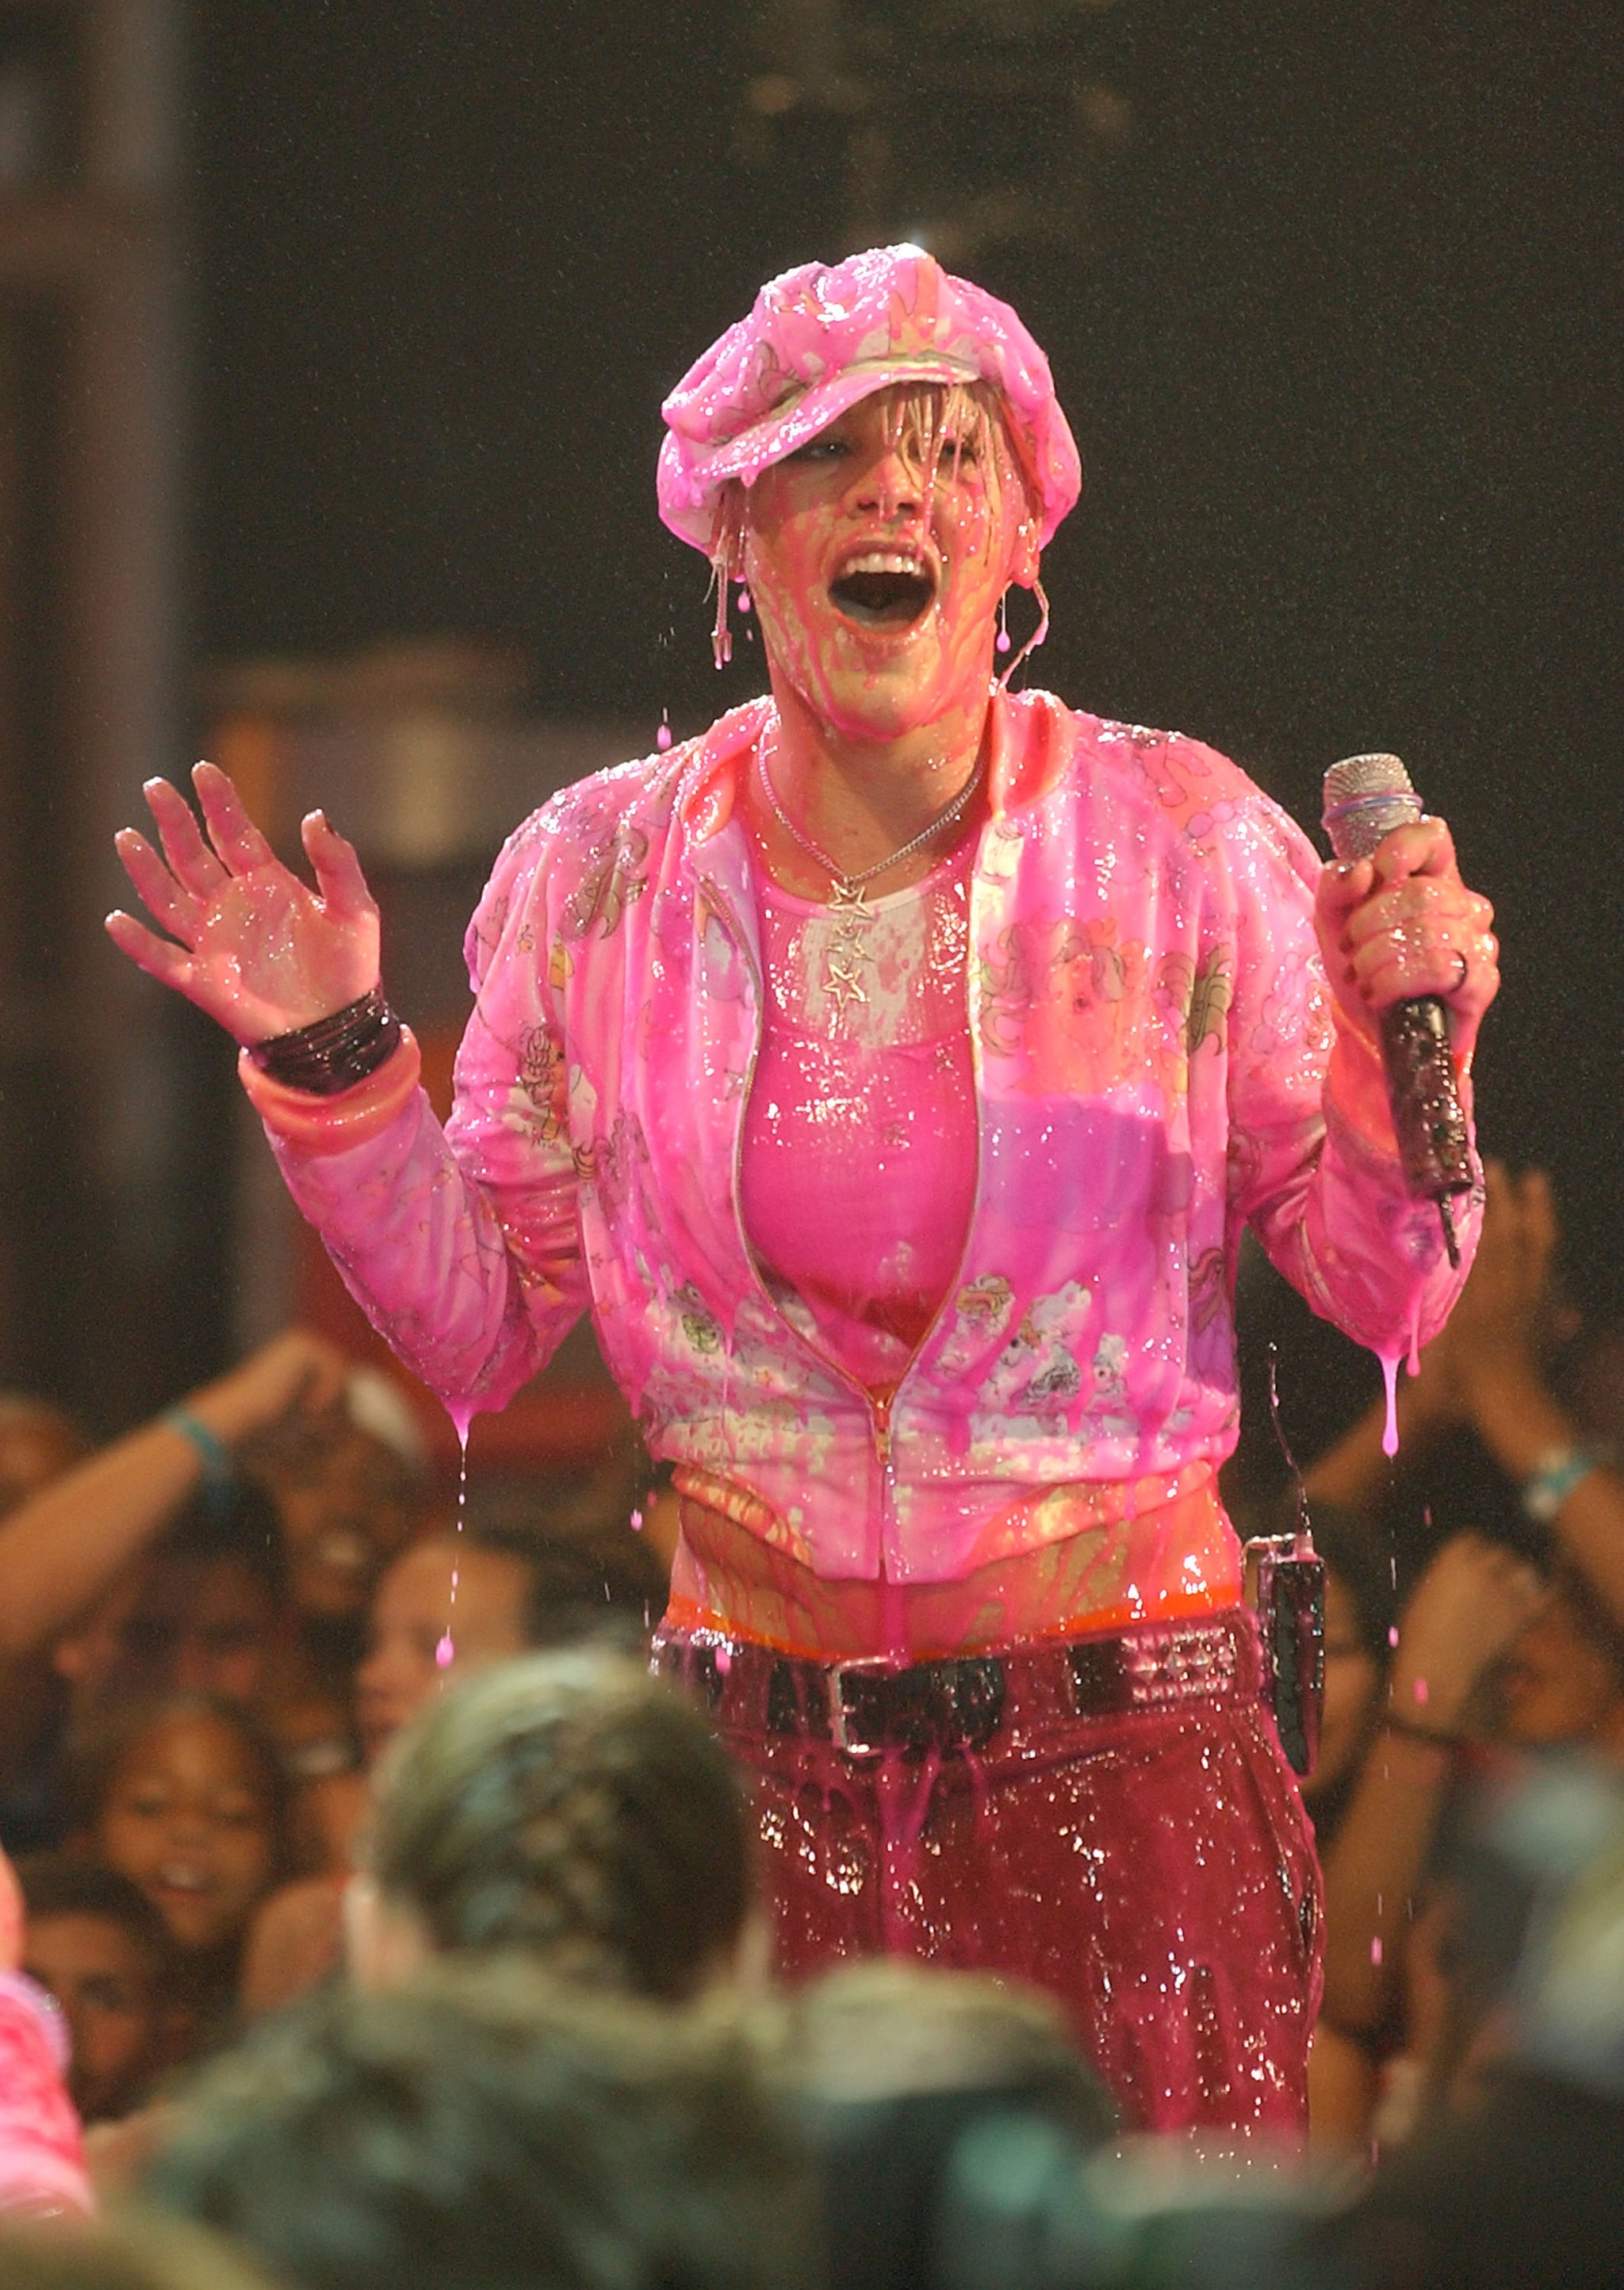 Pink got some surprise pink slime in 2002.